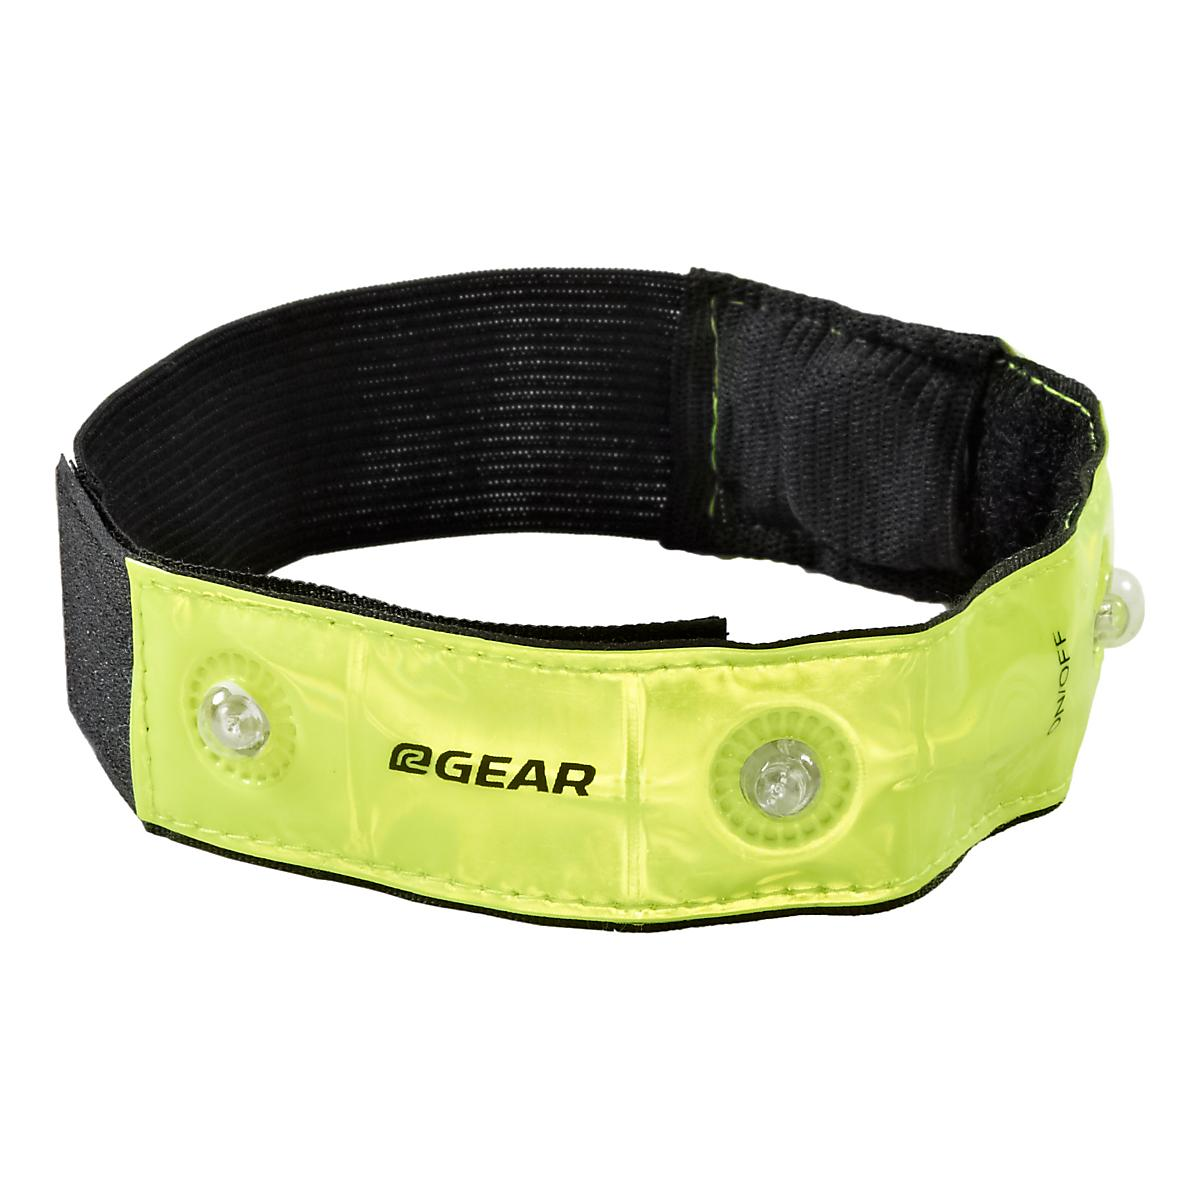 R-Gear�Armed With Light Reflective Armband